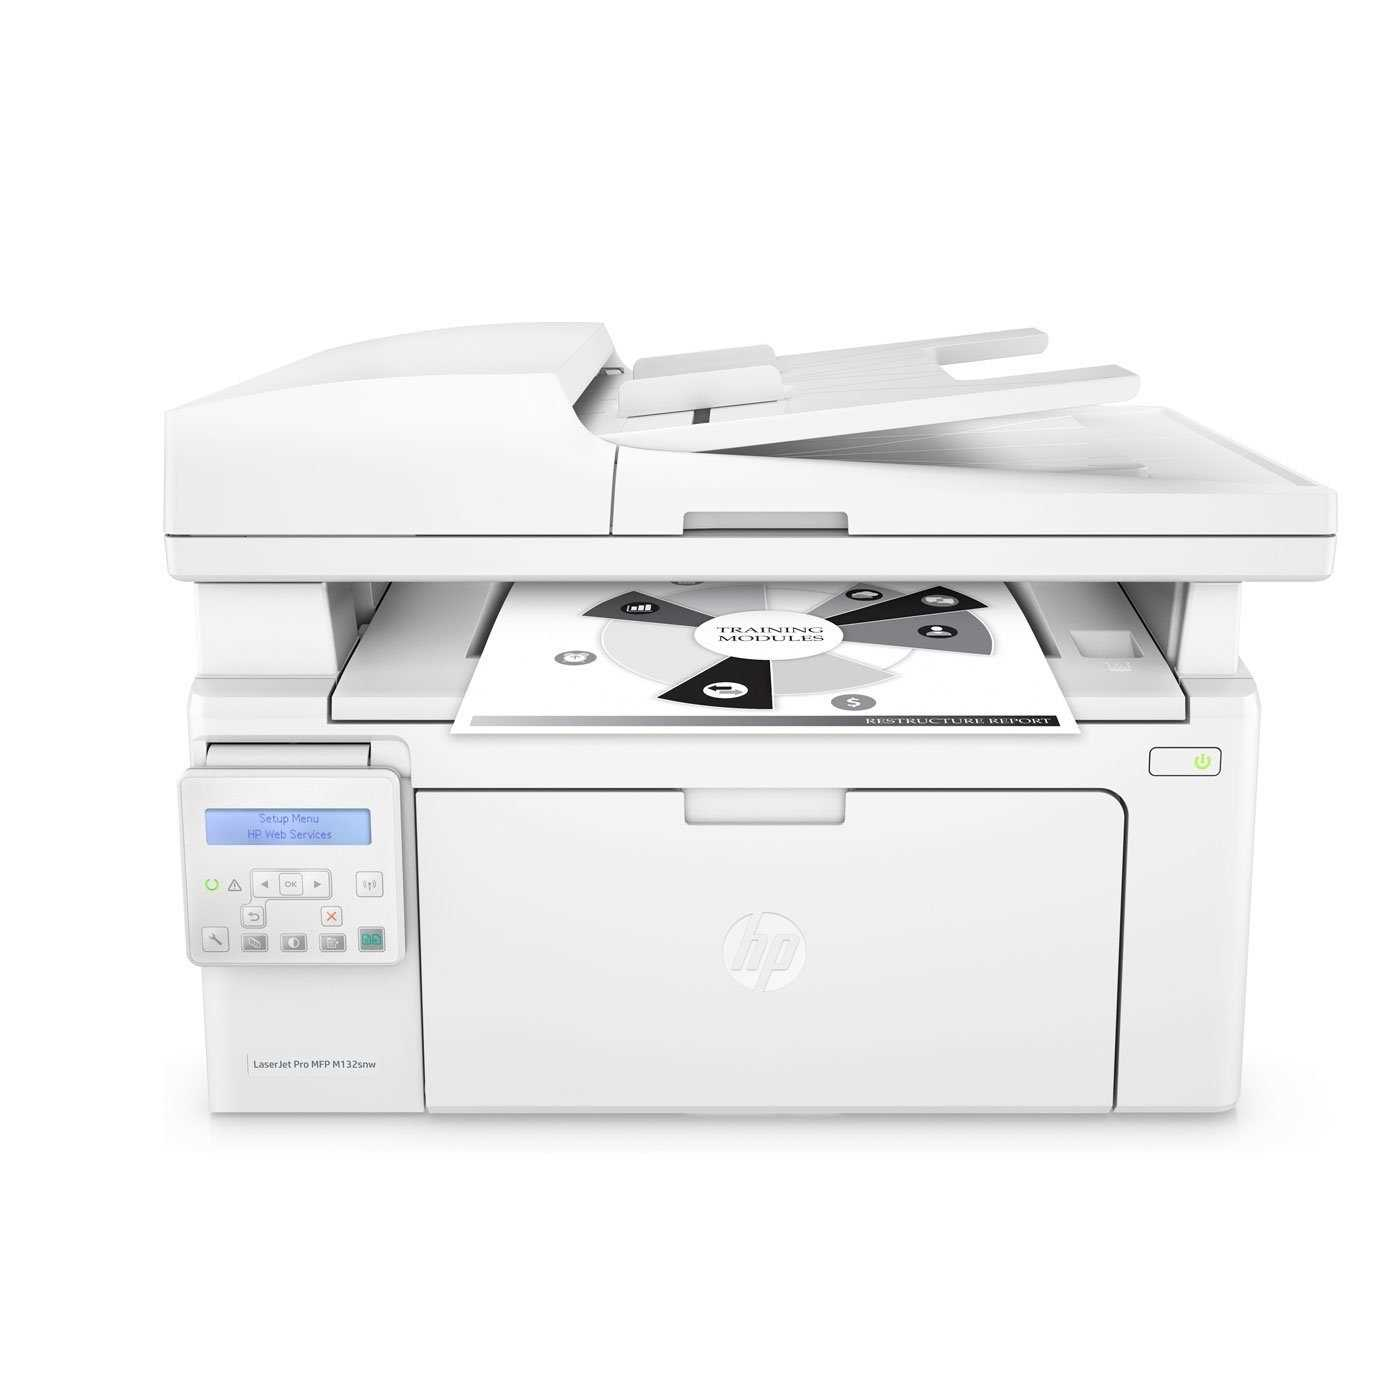 HP LaserJet Pro MFP M132snw Laser Multifunction Printer